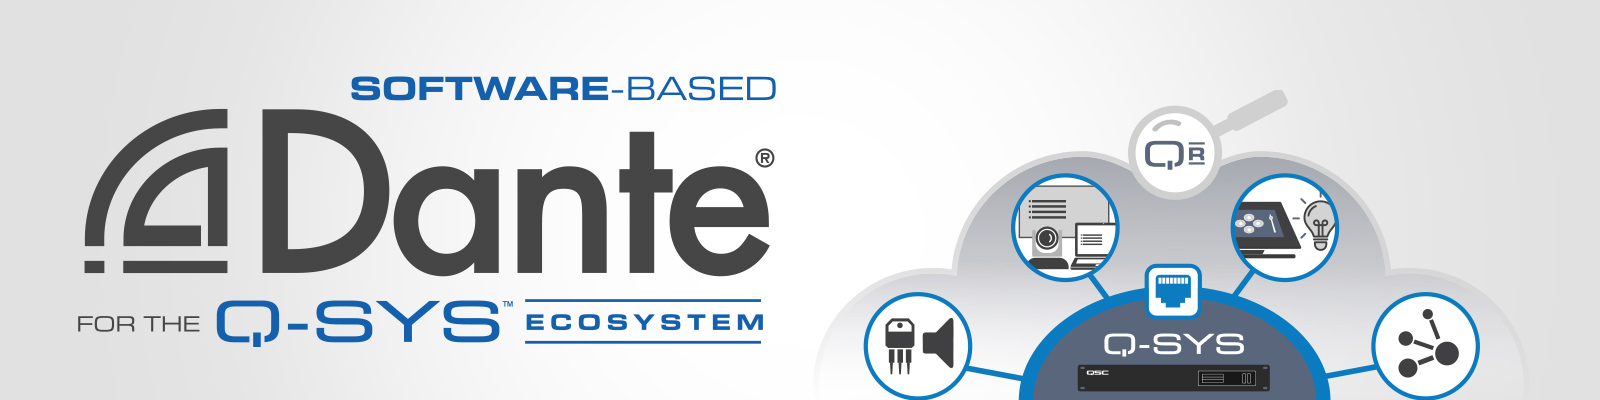 Software Based Dante Software Feature Licenses Products Peripherals Accessories Q Sys Ecosystem Products Systems Qsc